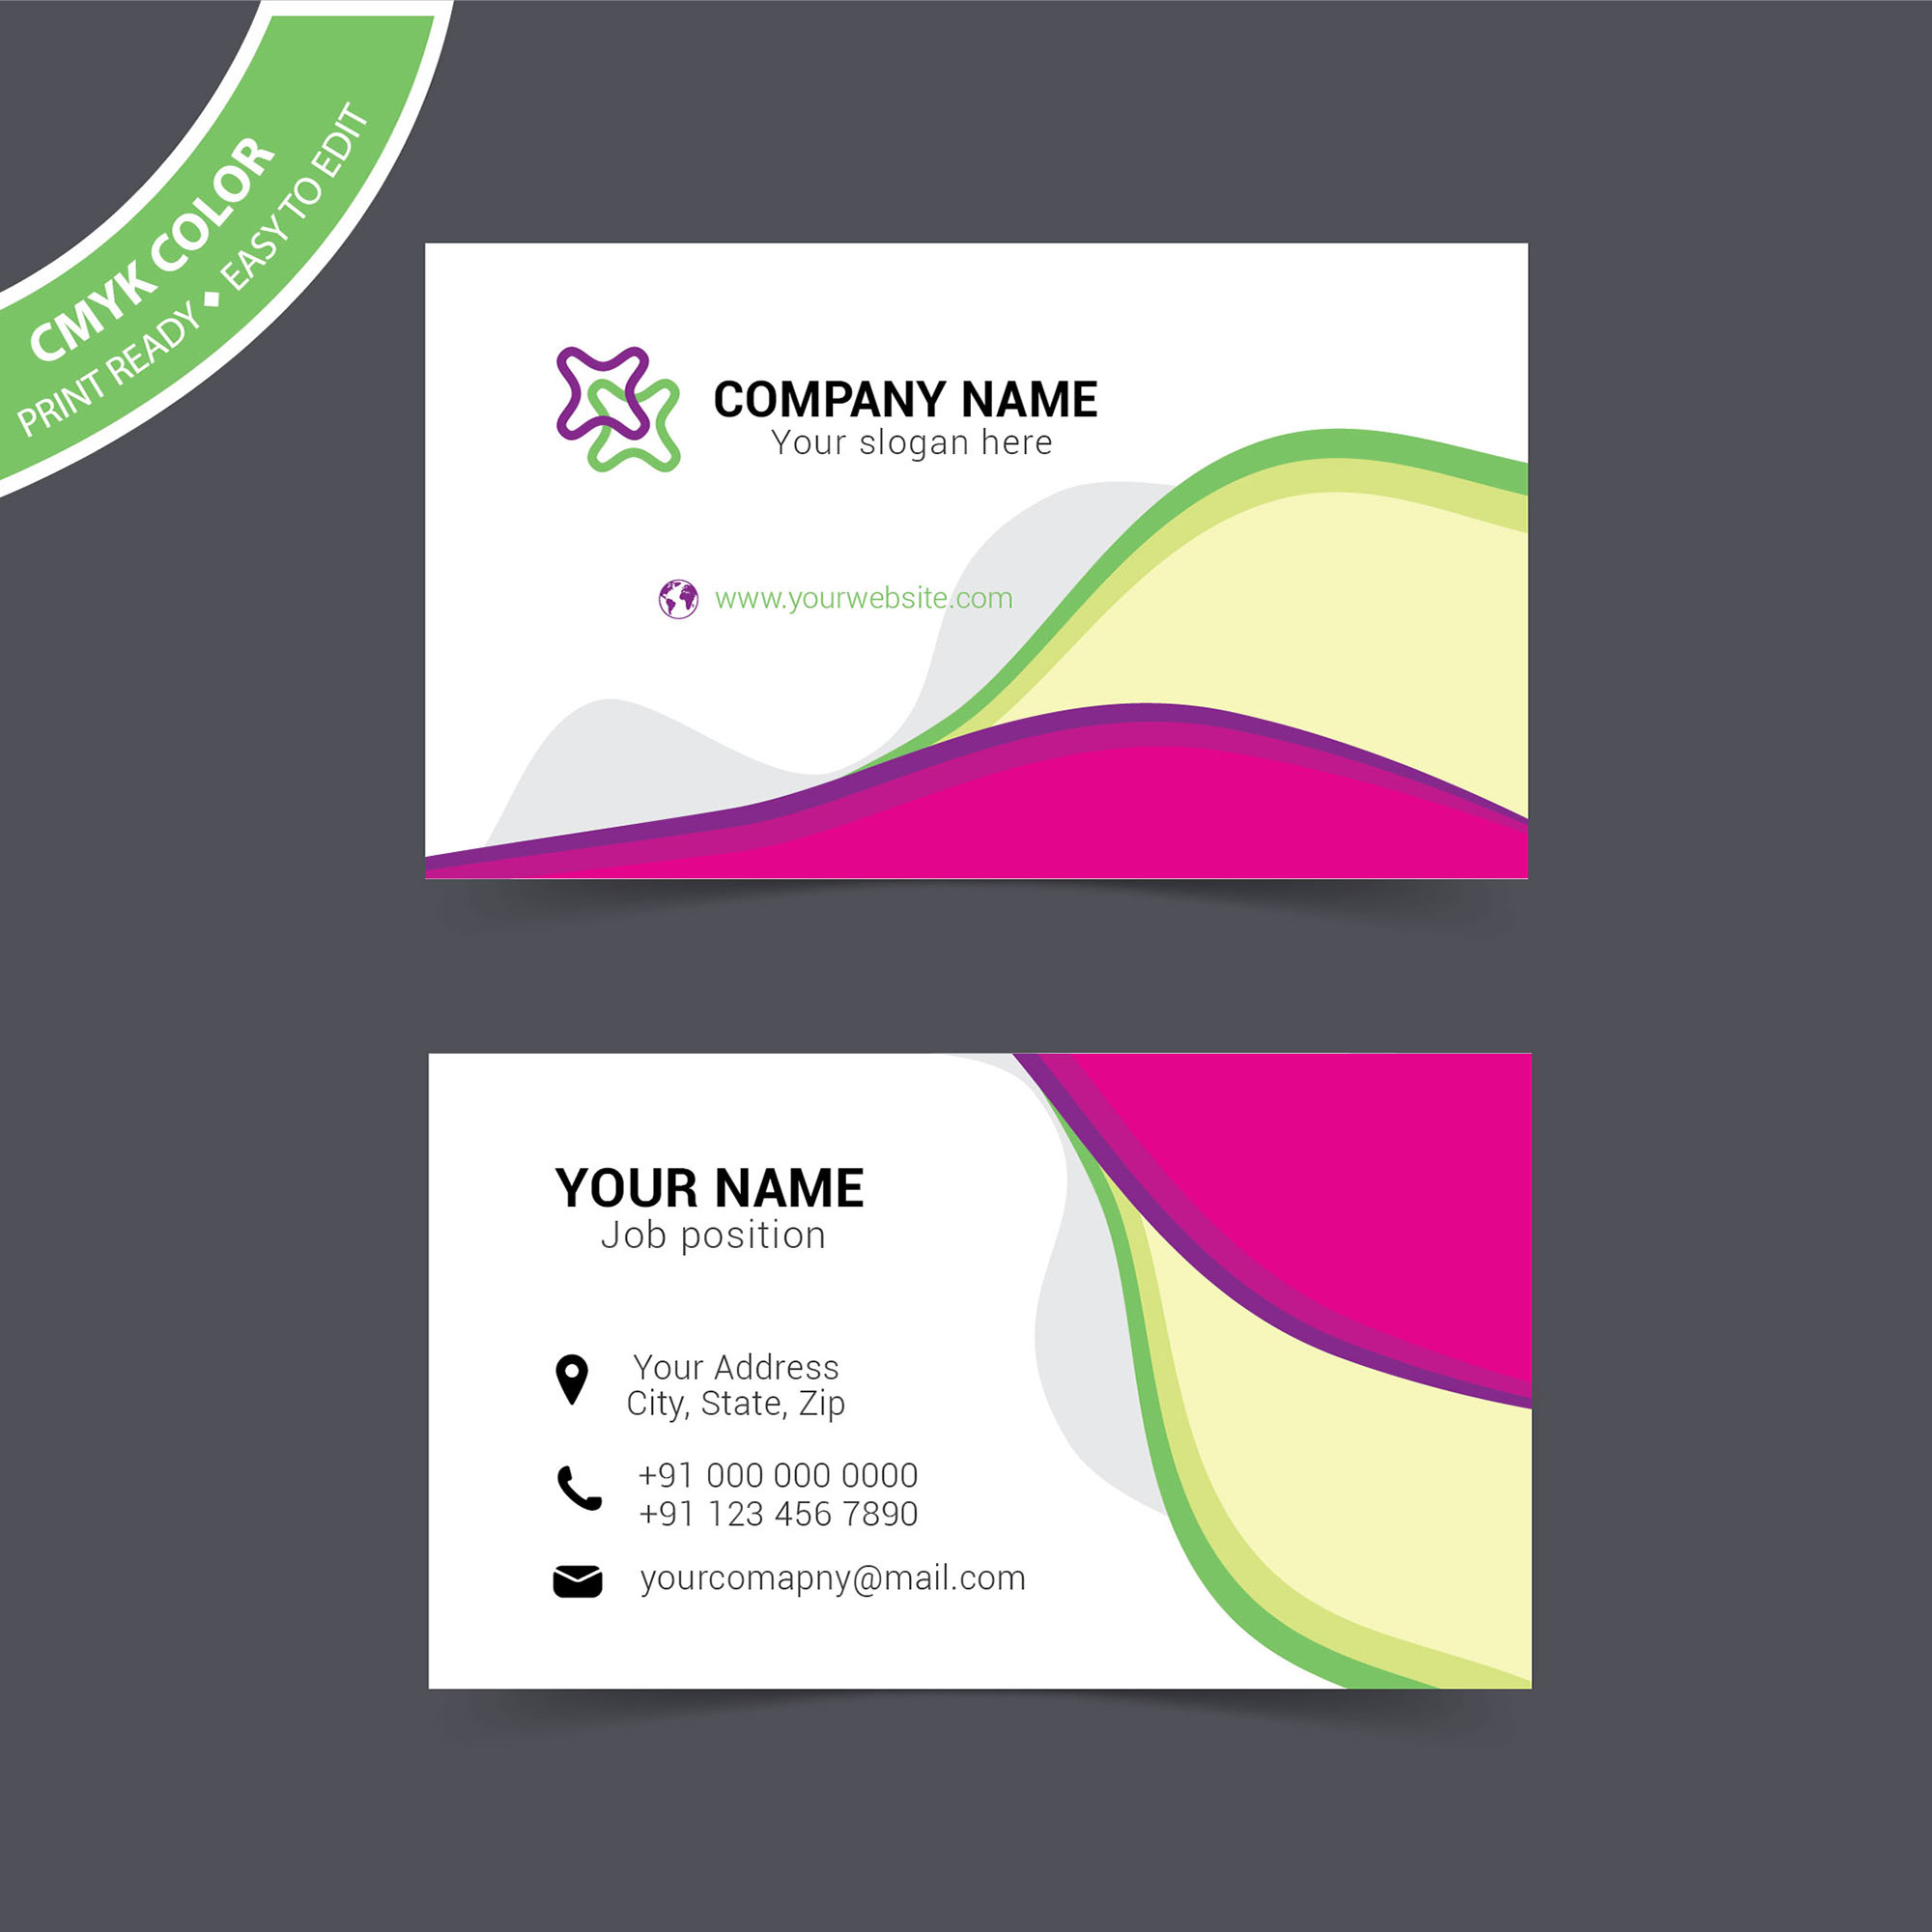 Visiting card design sample free download wisxi business card business cards business card design business card template design templates cheaphphosting Images